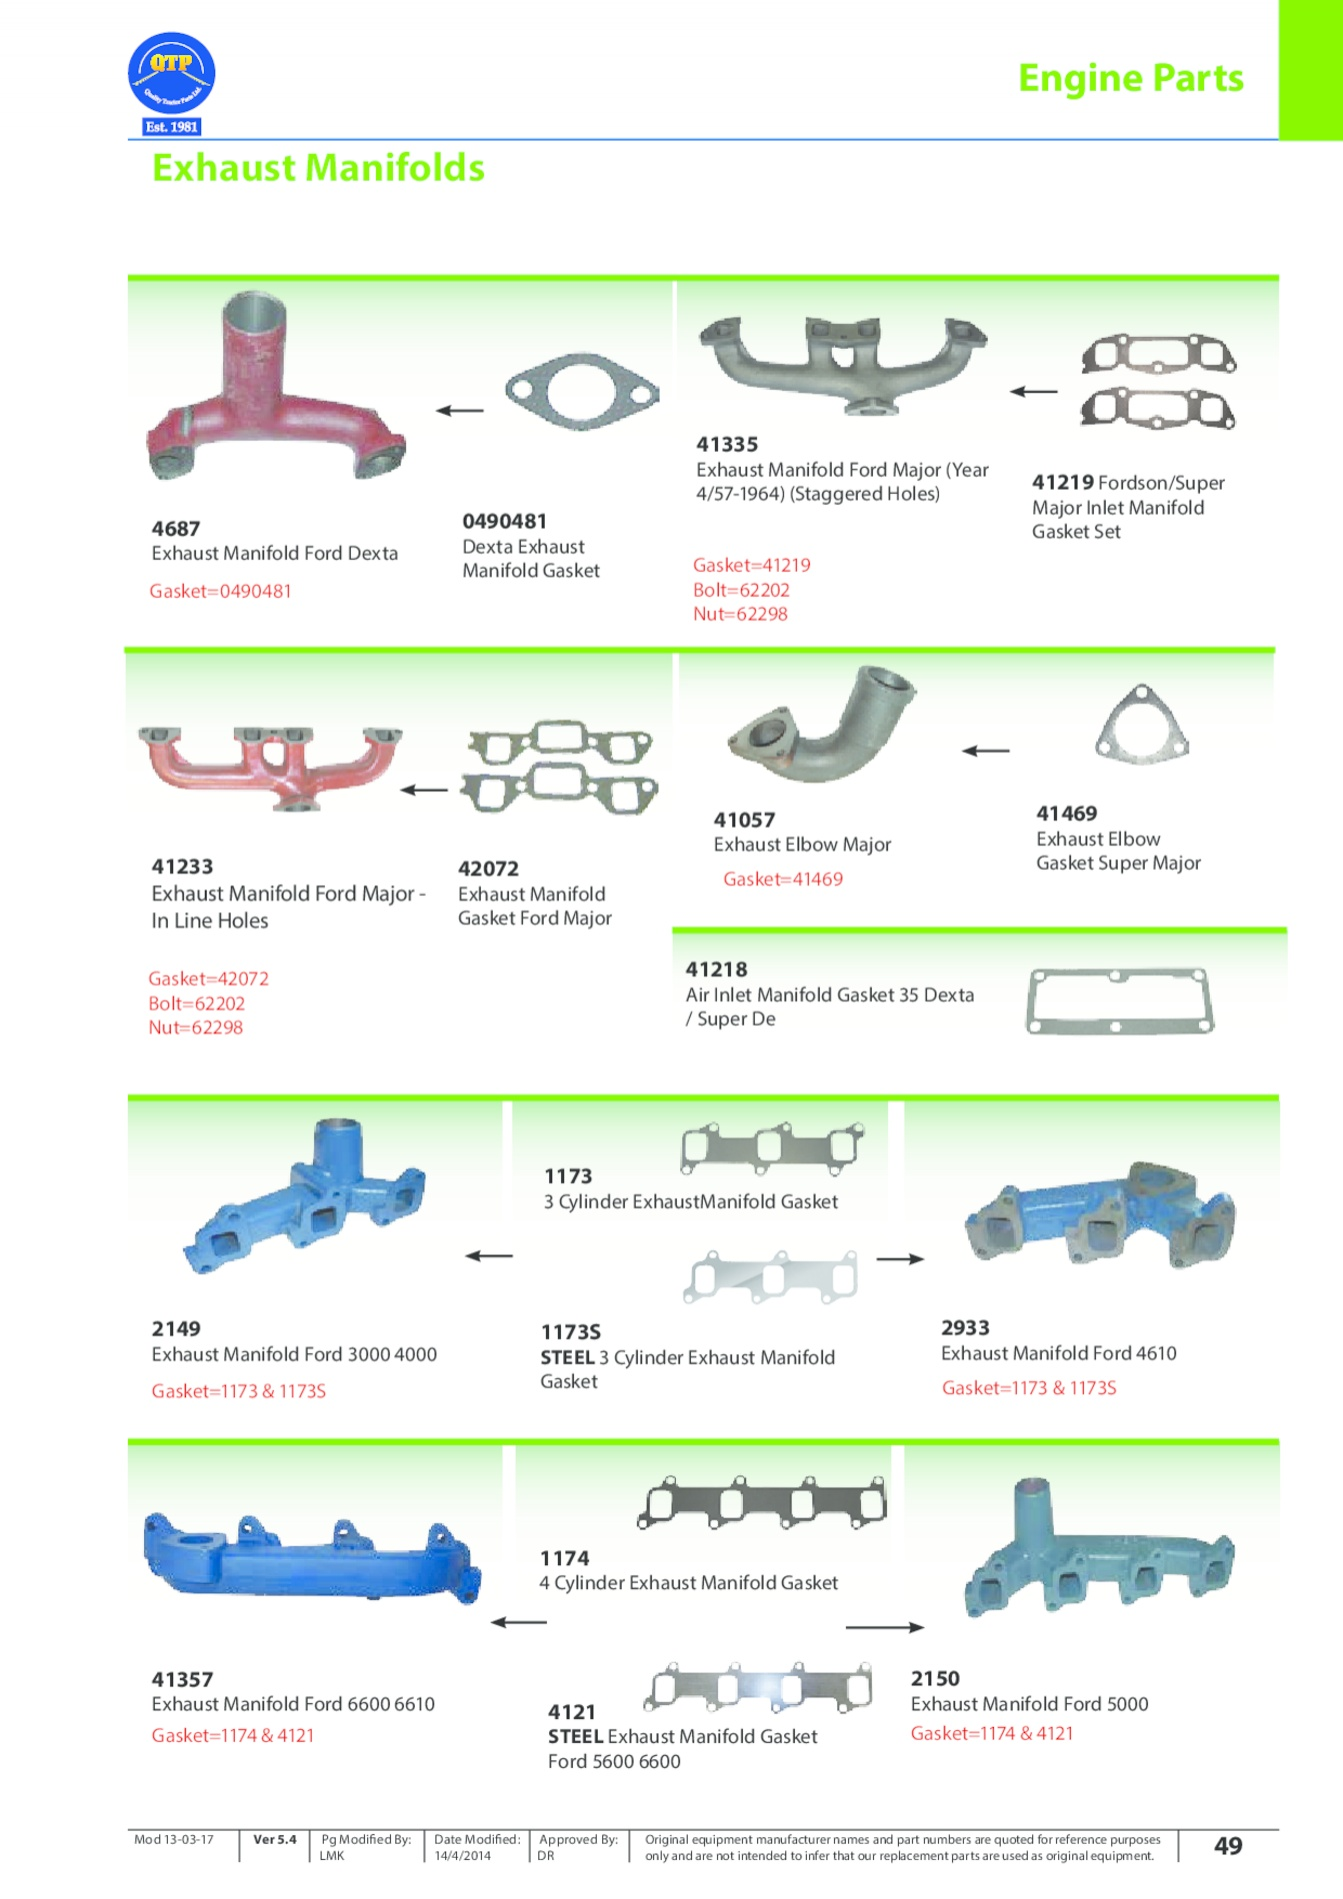 marketing and manifolds product line As we mentioned in our presentation, we often found ourselves pairing the model years 1987 and 1988 gather and the years 1989 and 1 990 together, as the two pairs.